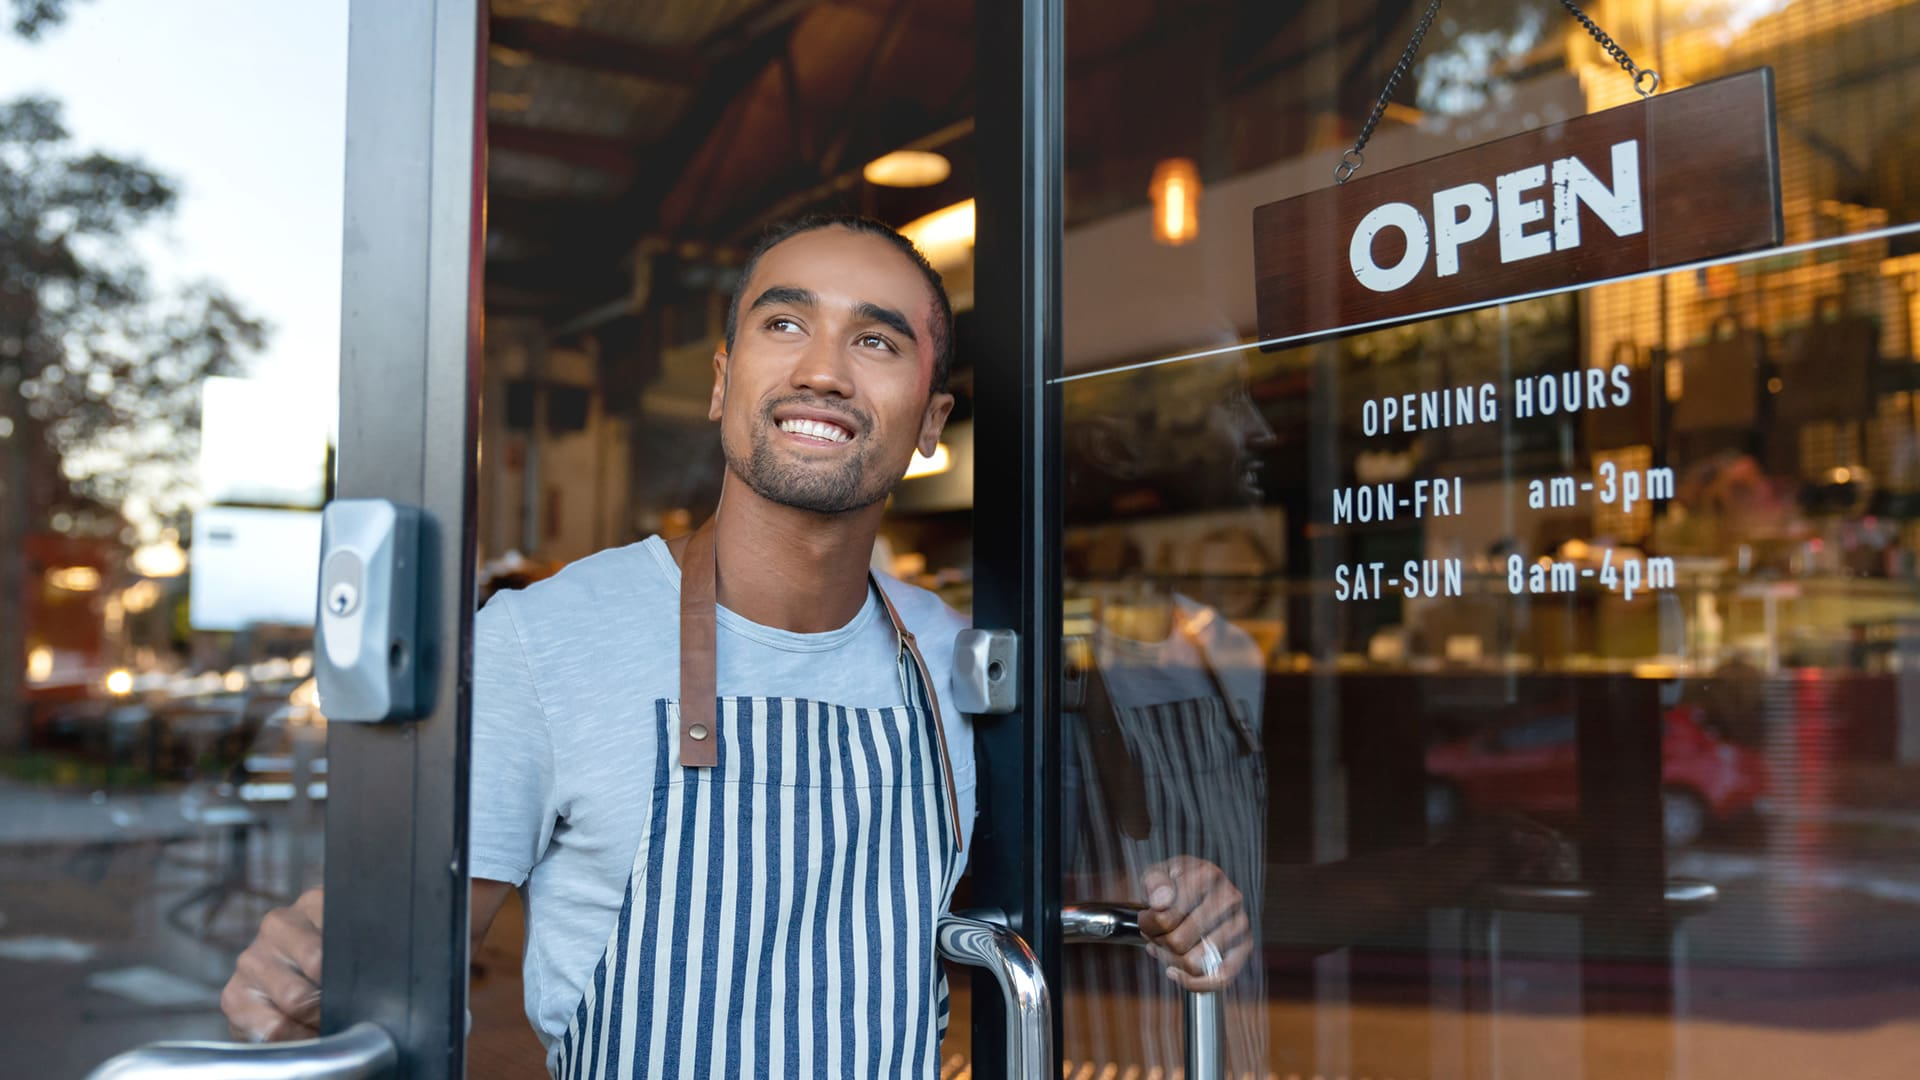 A business owner opens the door of his shop